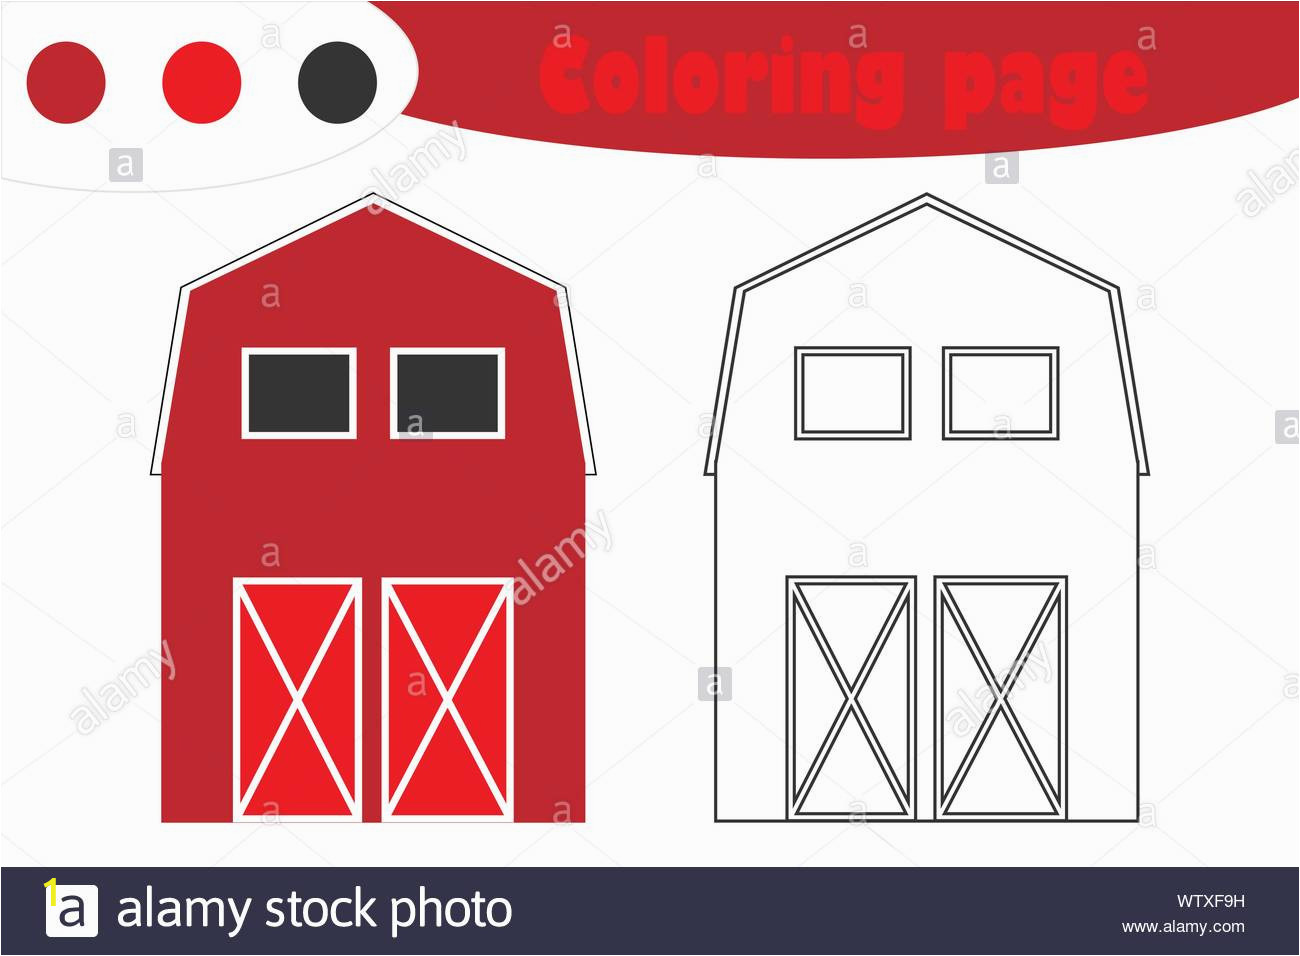 farm barn in cartoon style coloring page spring education paper game for the development of children kids preschool activity printable worksheet WTXF9H